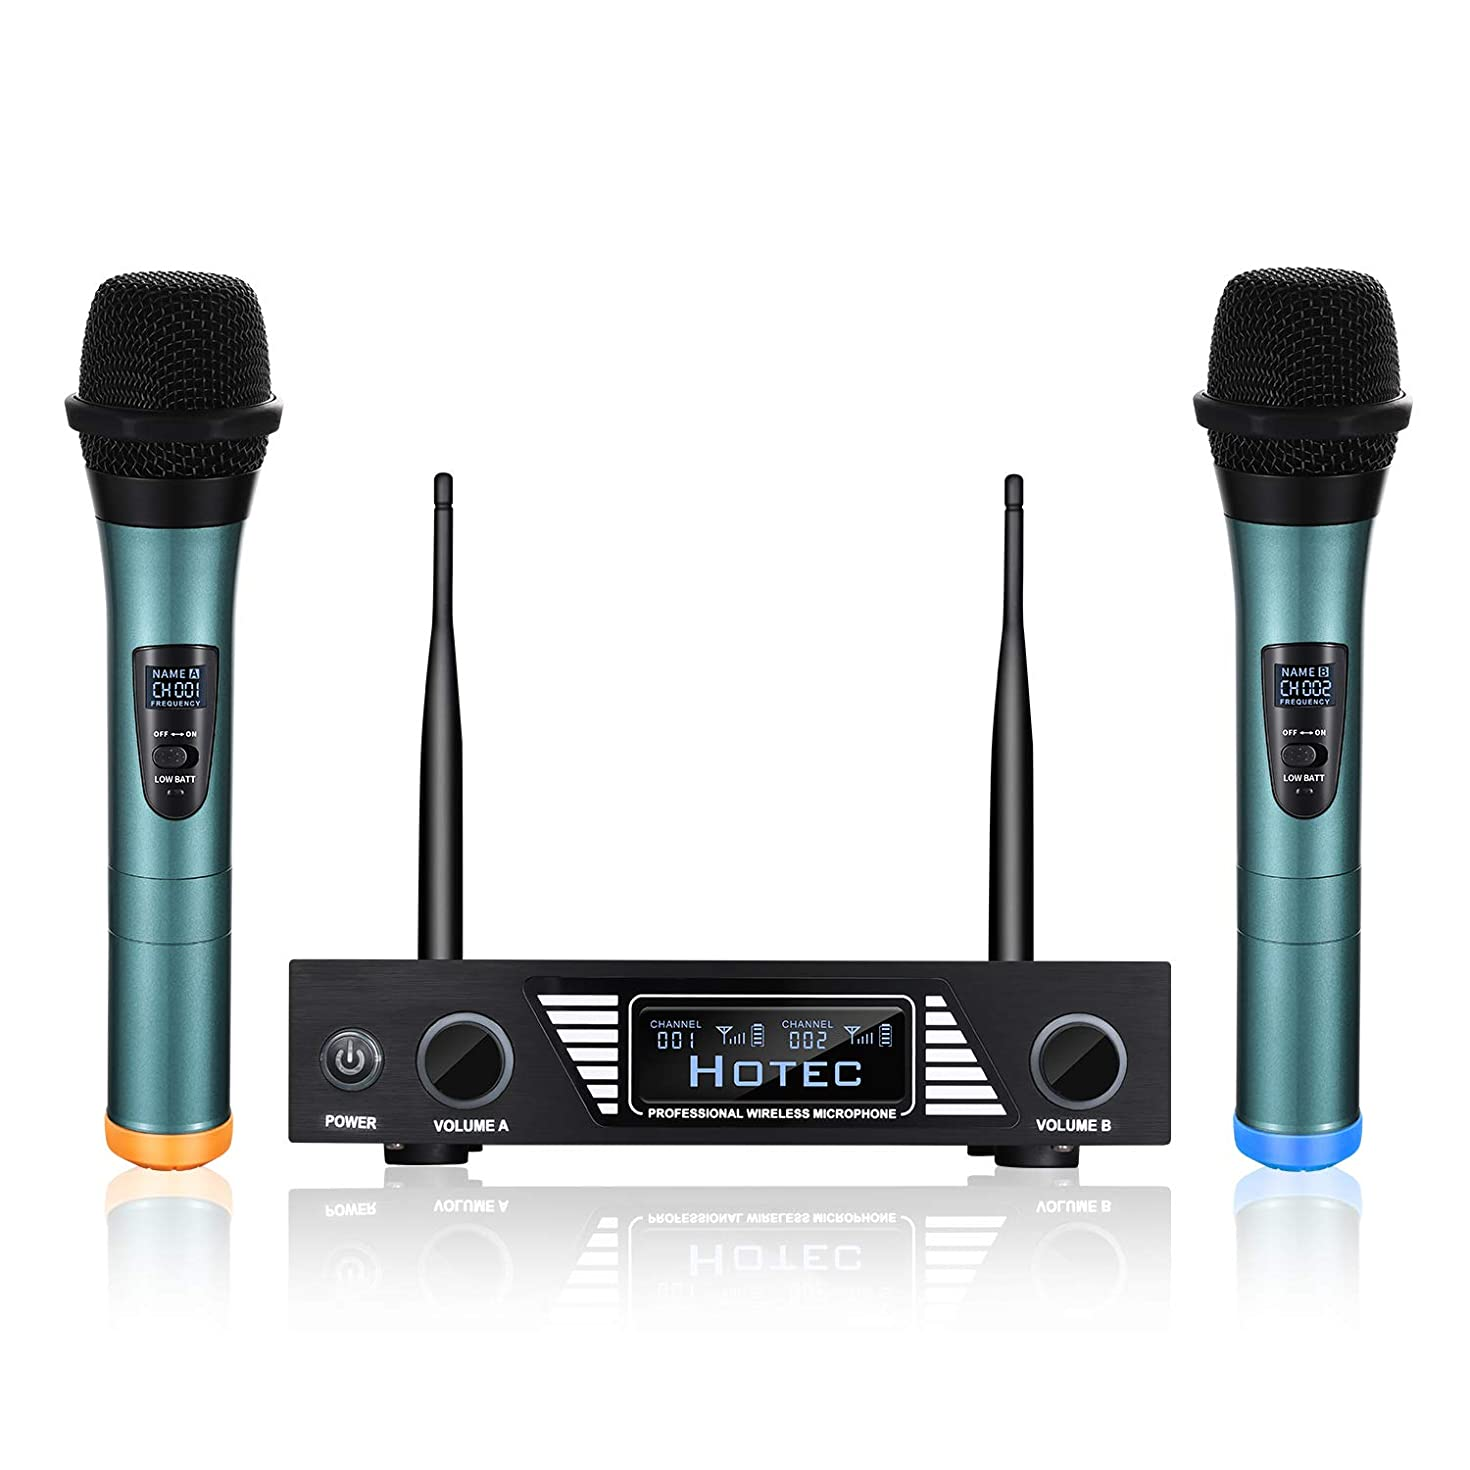 Hotec UHF Wireless Microphone System with LCD Display and Dual Handheld Microphone Over PA, Mixer, Speaker, Karaoke Machine For DJ, Church, Home, Karaoke, Business Meeting